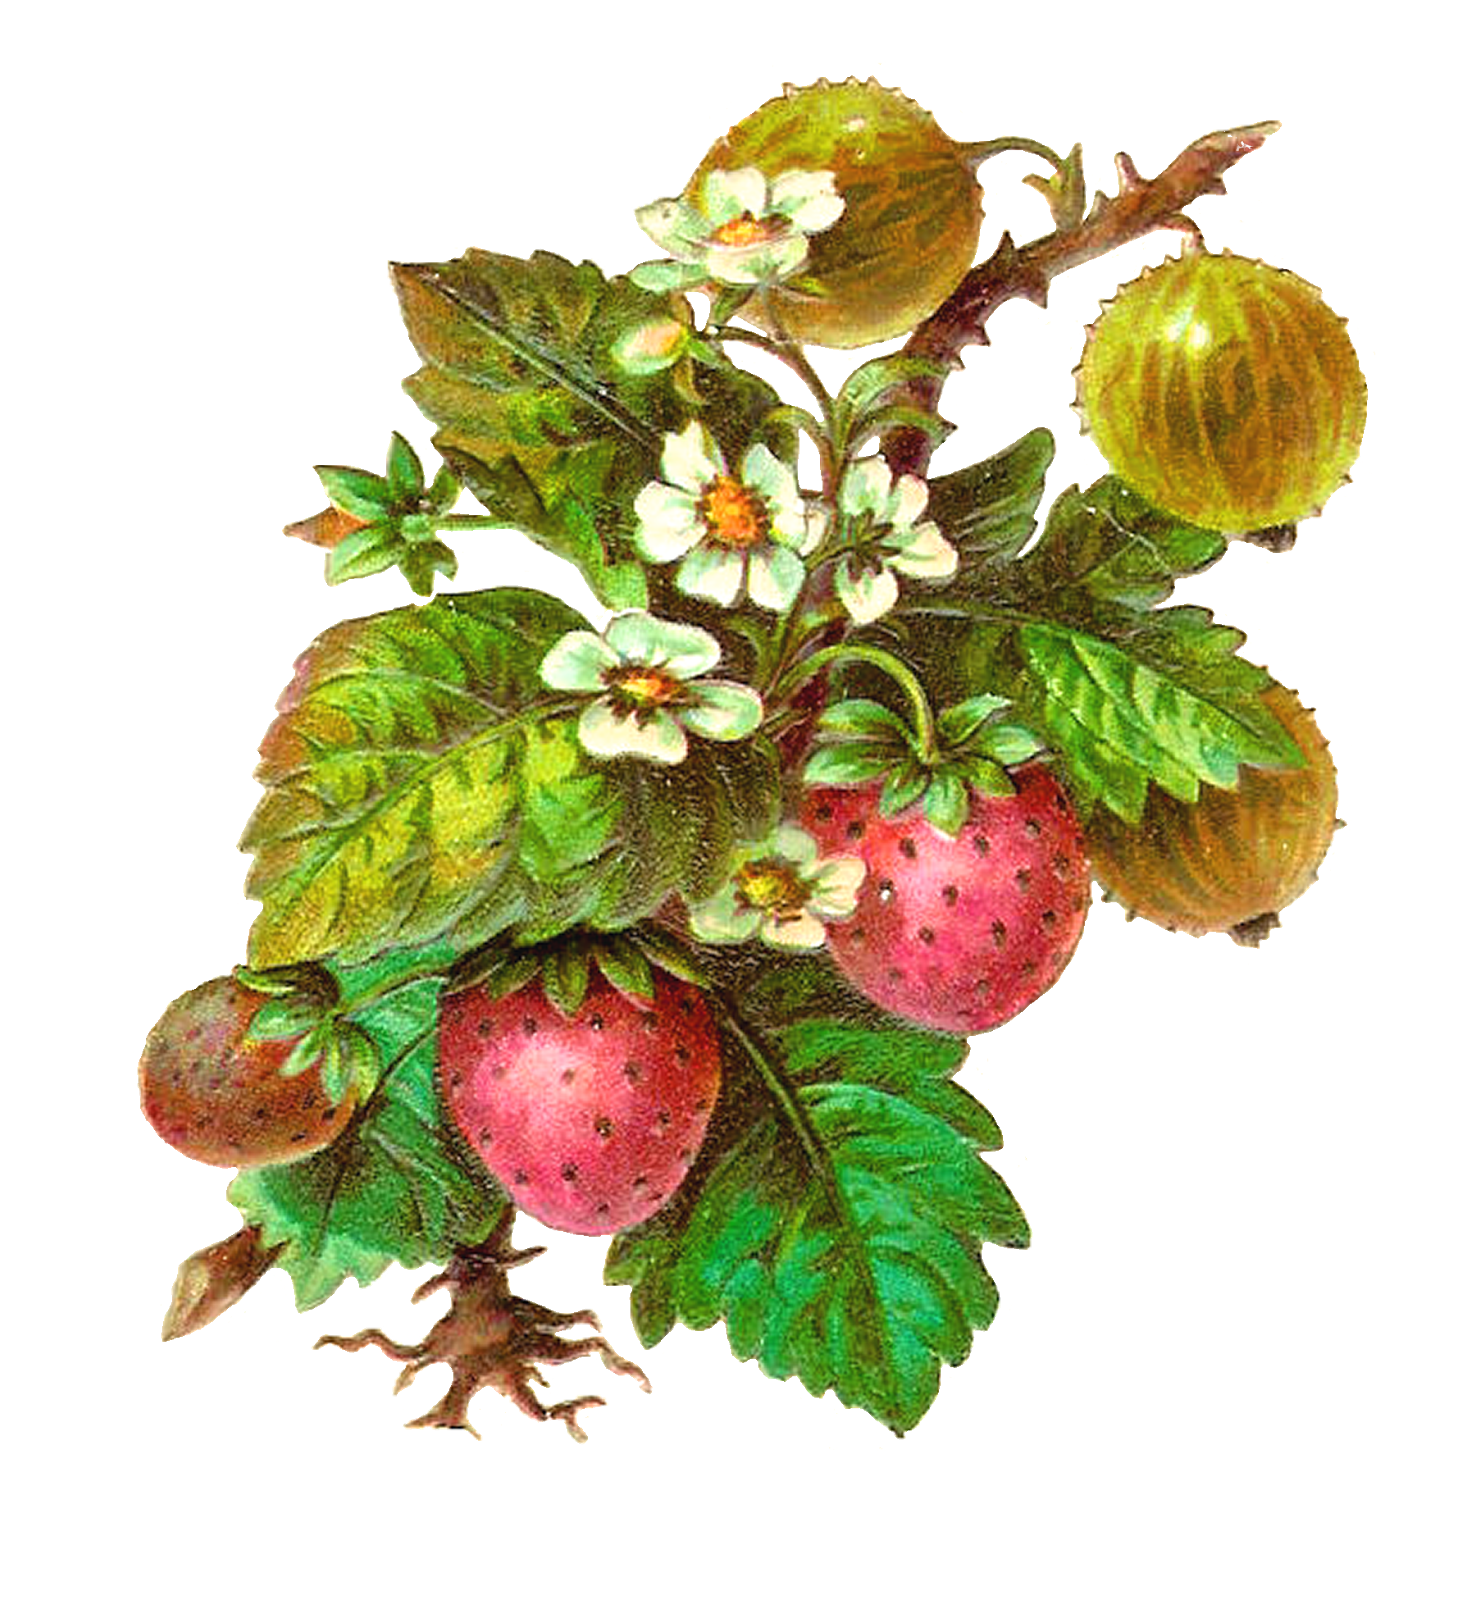 Antique images free fruit. Strawberries clipart strawberry flower